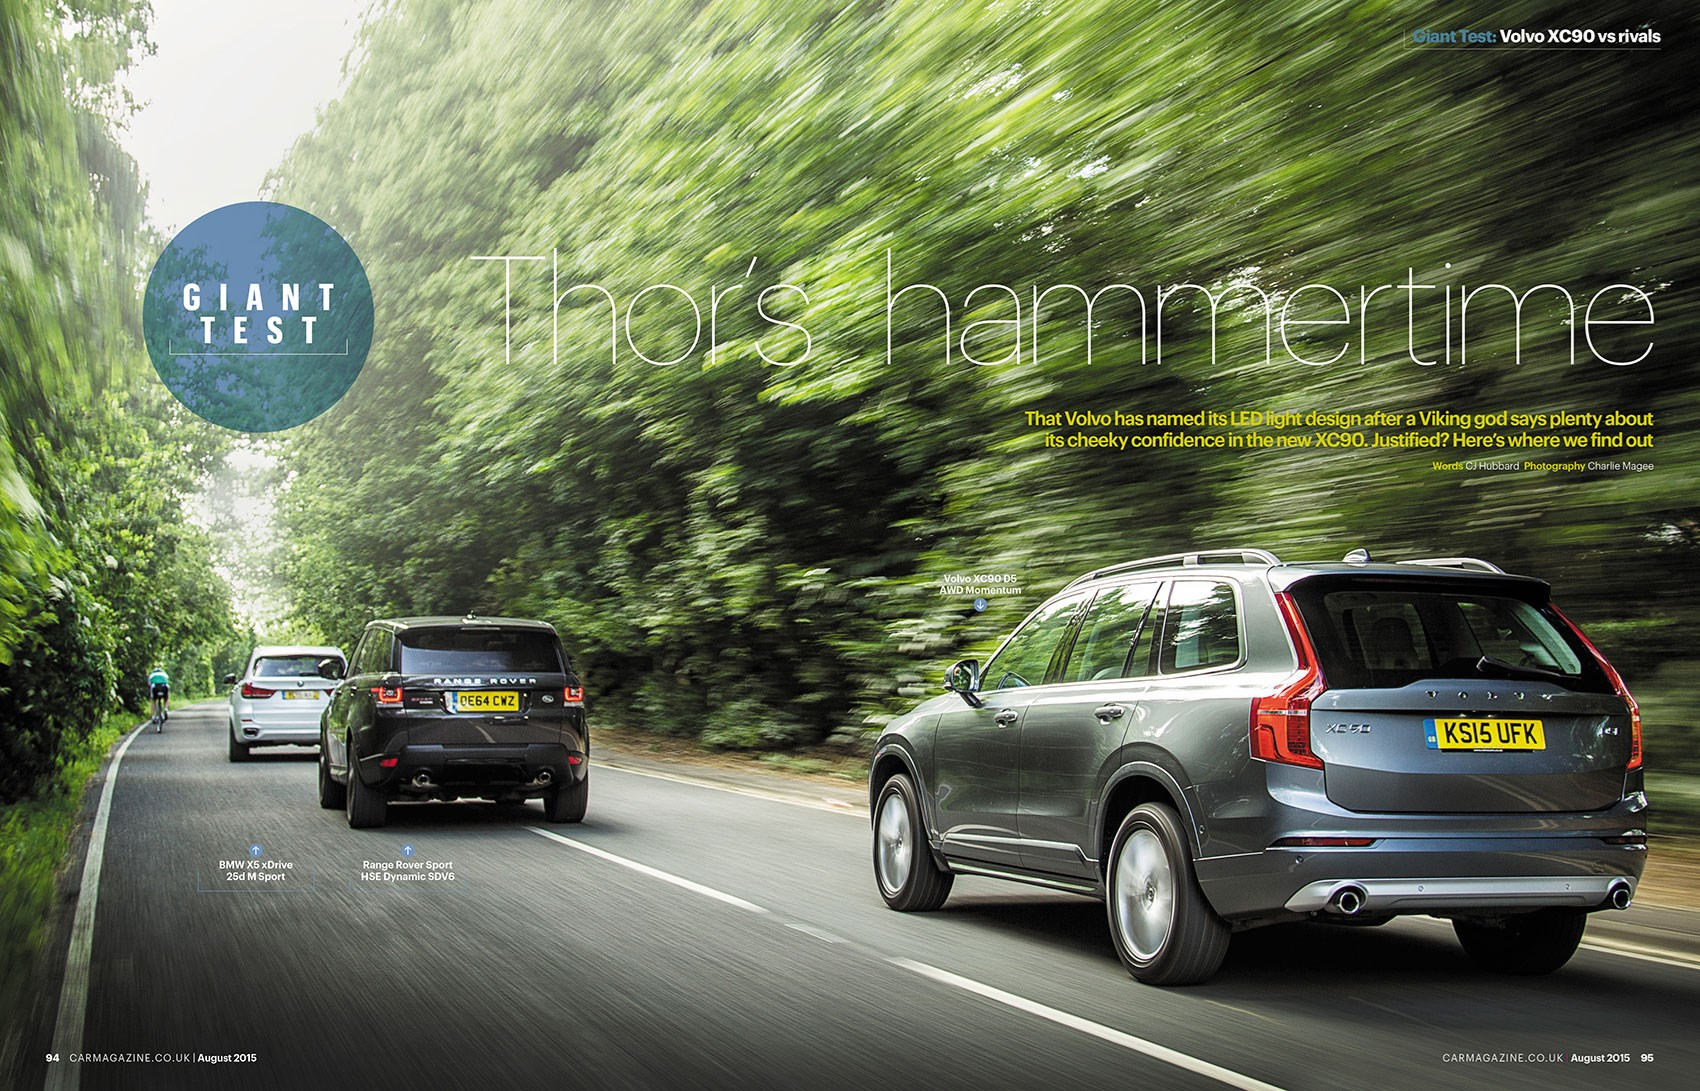 Volvo XC90 vs BMW X5 vs Range Rover Sport, by CAR magazine